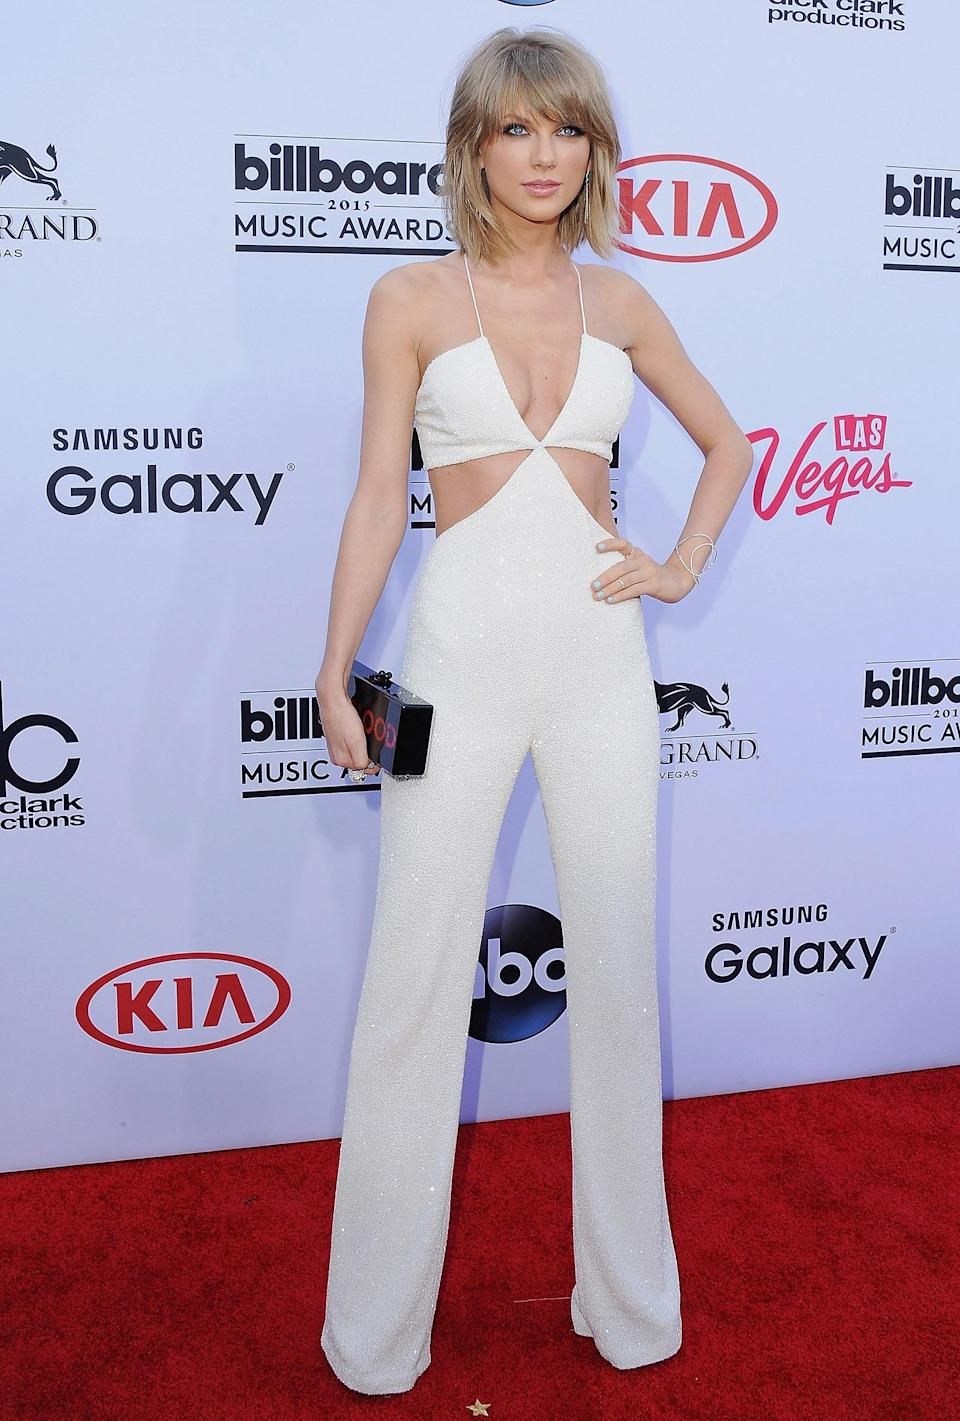 """<p>Swift turned heads in this edgy, chic jumpsuit during the 2015 Billboard Music Awards, where she performed her hit song """"Bad Blood."""" (Photo: Jon Kopaloff/FilmMagic) </p>"""